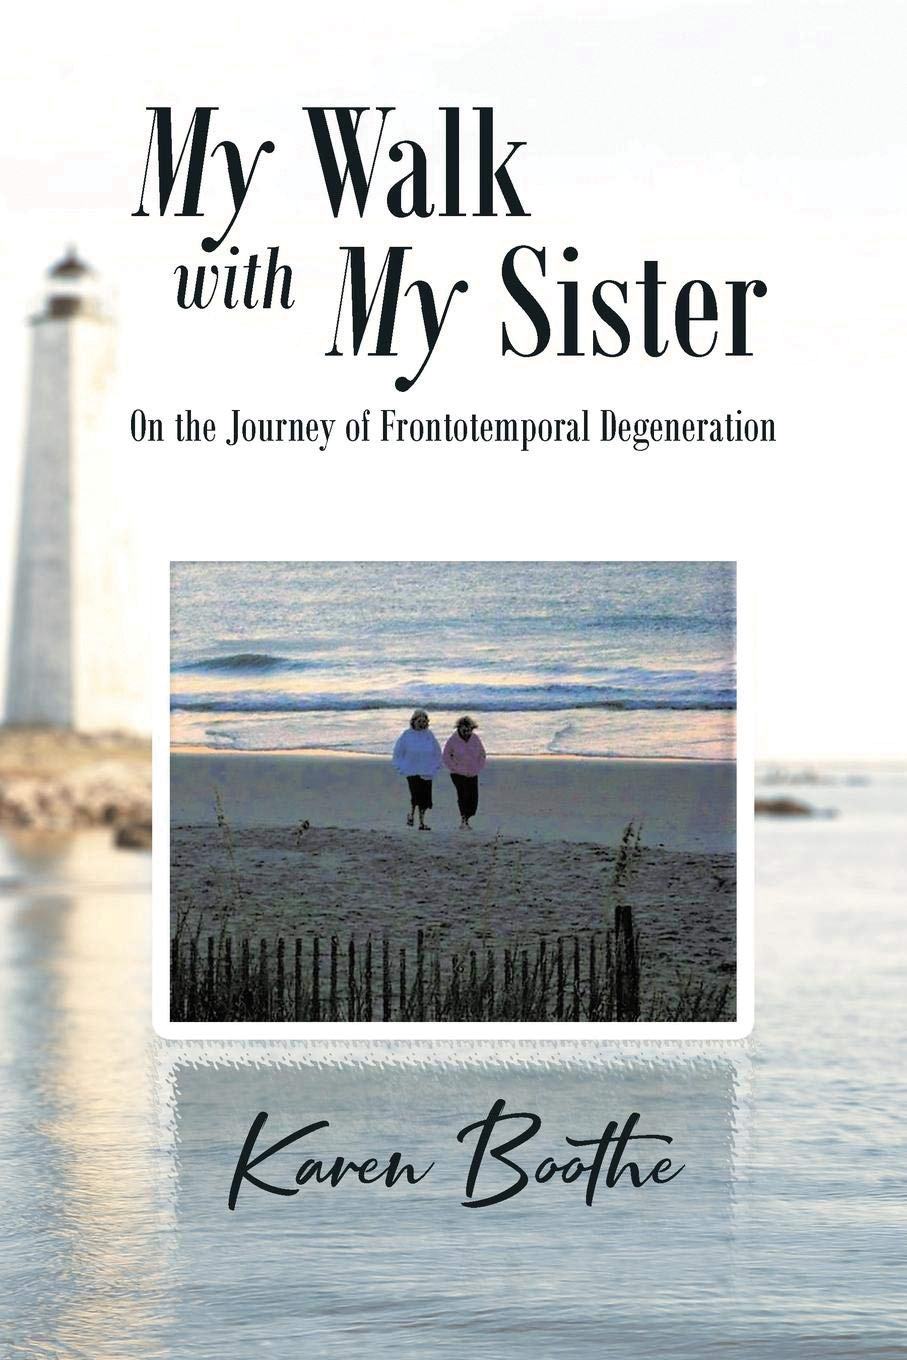 x.My Walk With My Sister by Karen Boothe.jpg